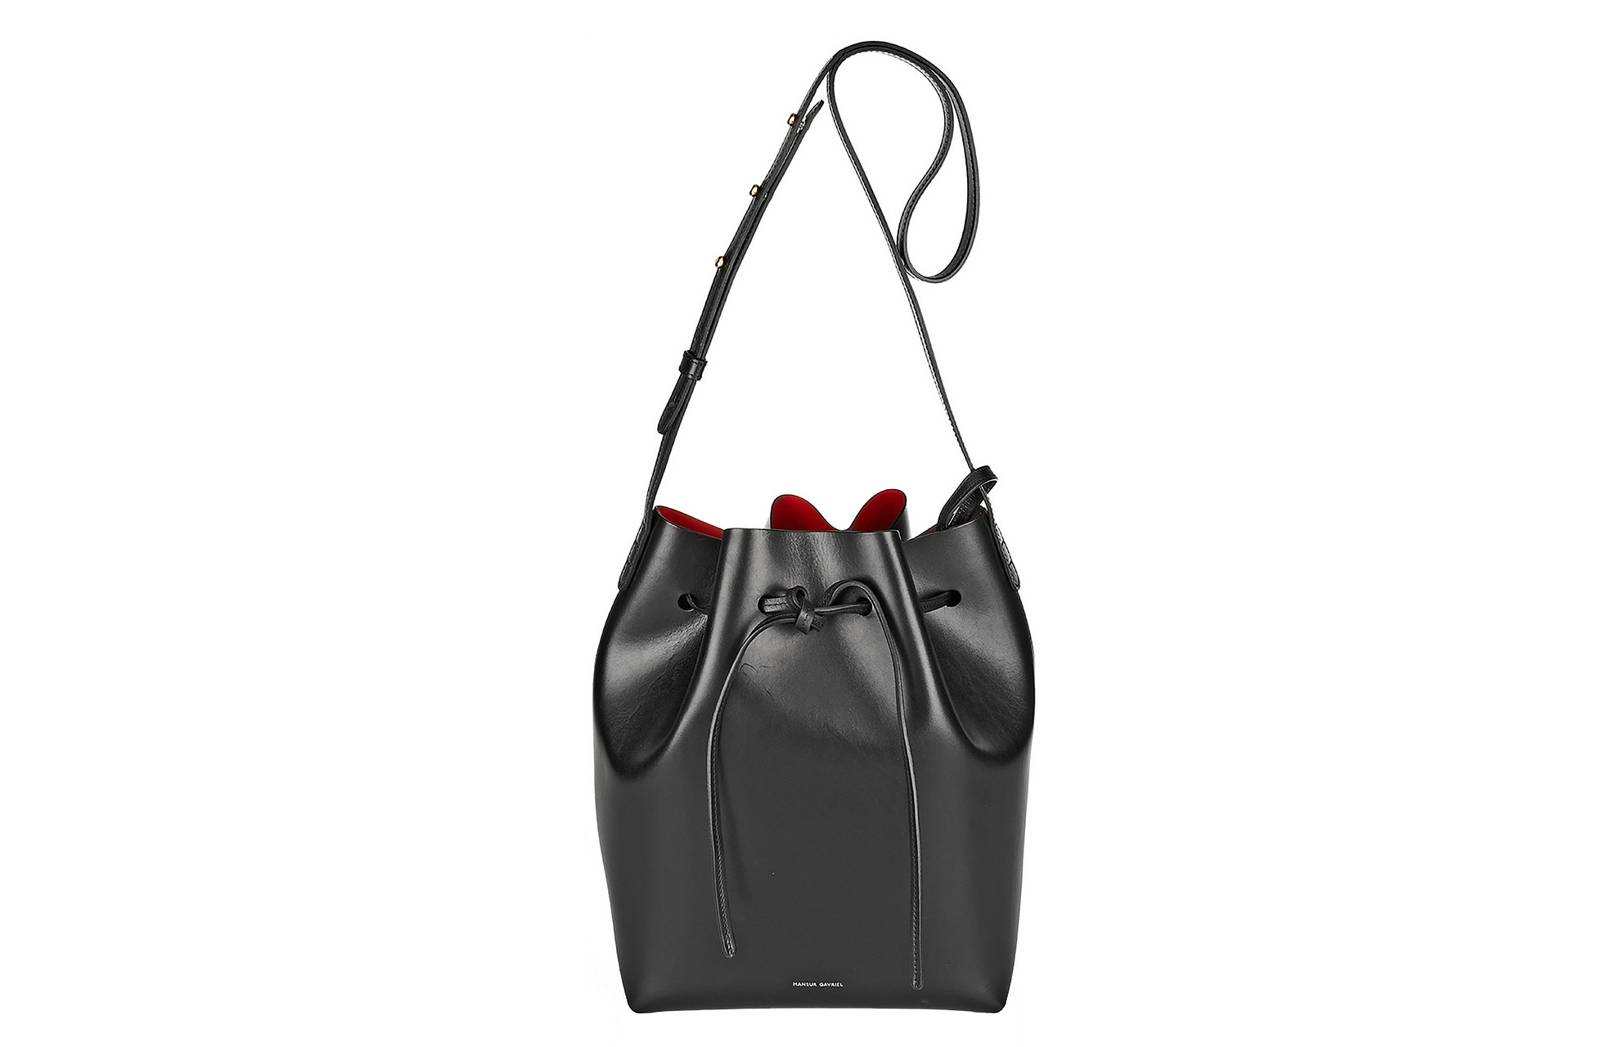 96ea64326bd0 Black Handbags | The Best Black Bags You Can Wear With Anything | British  Vogue